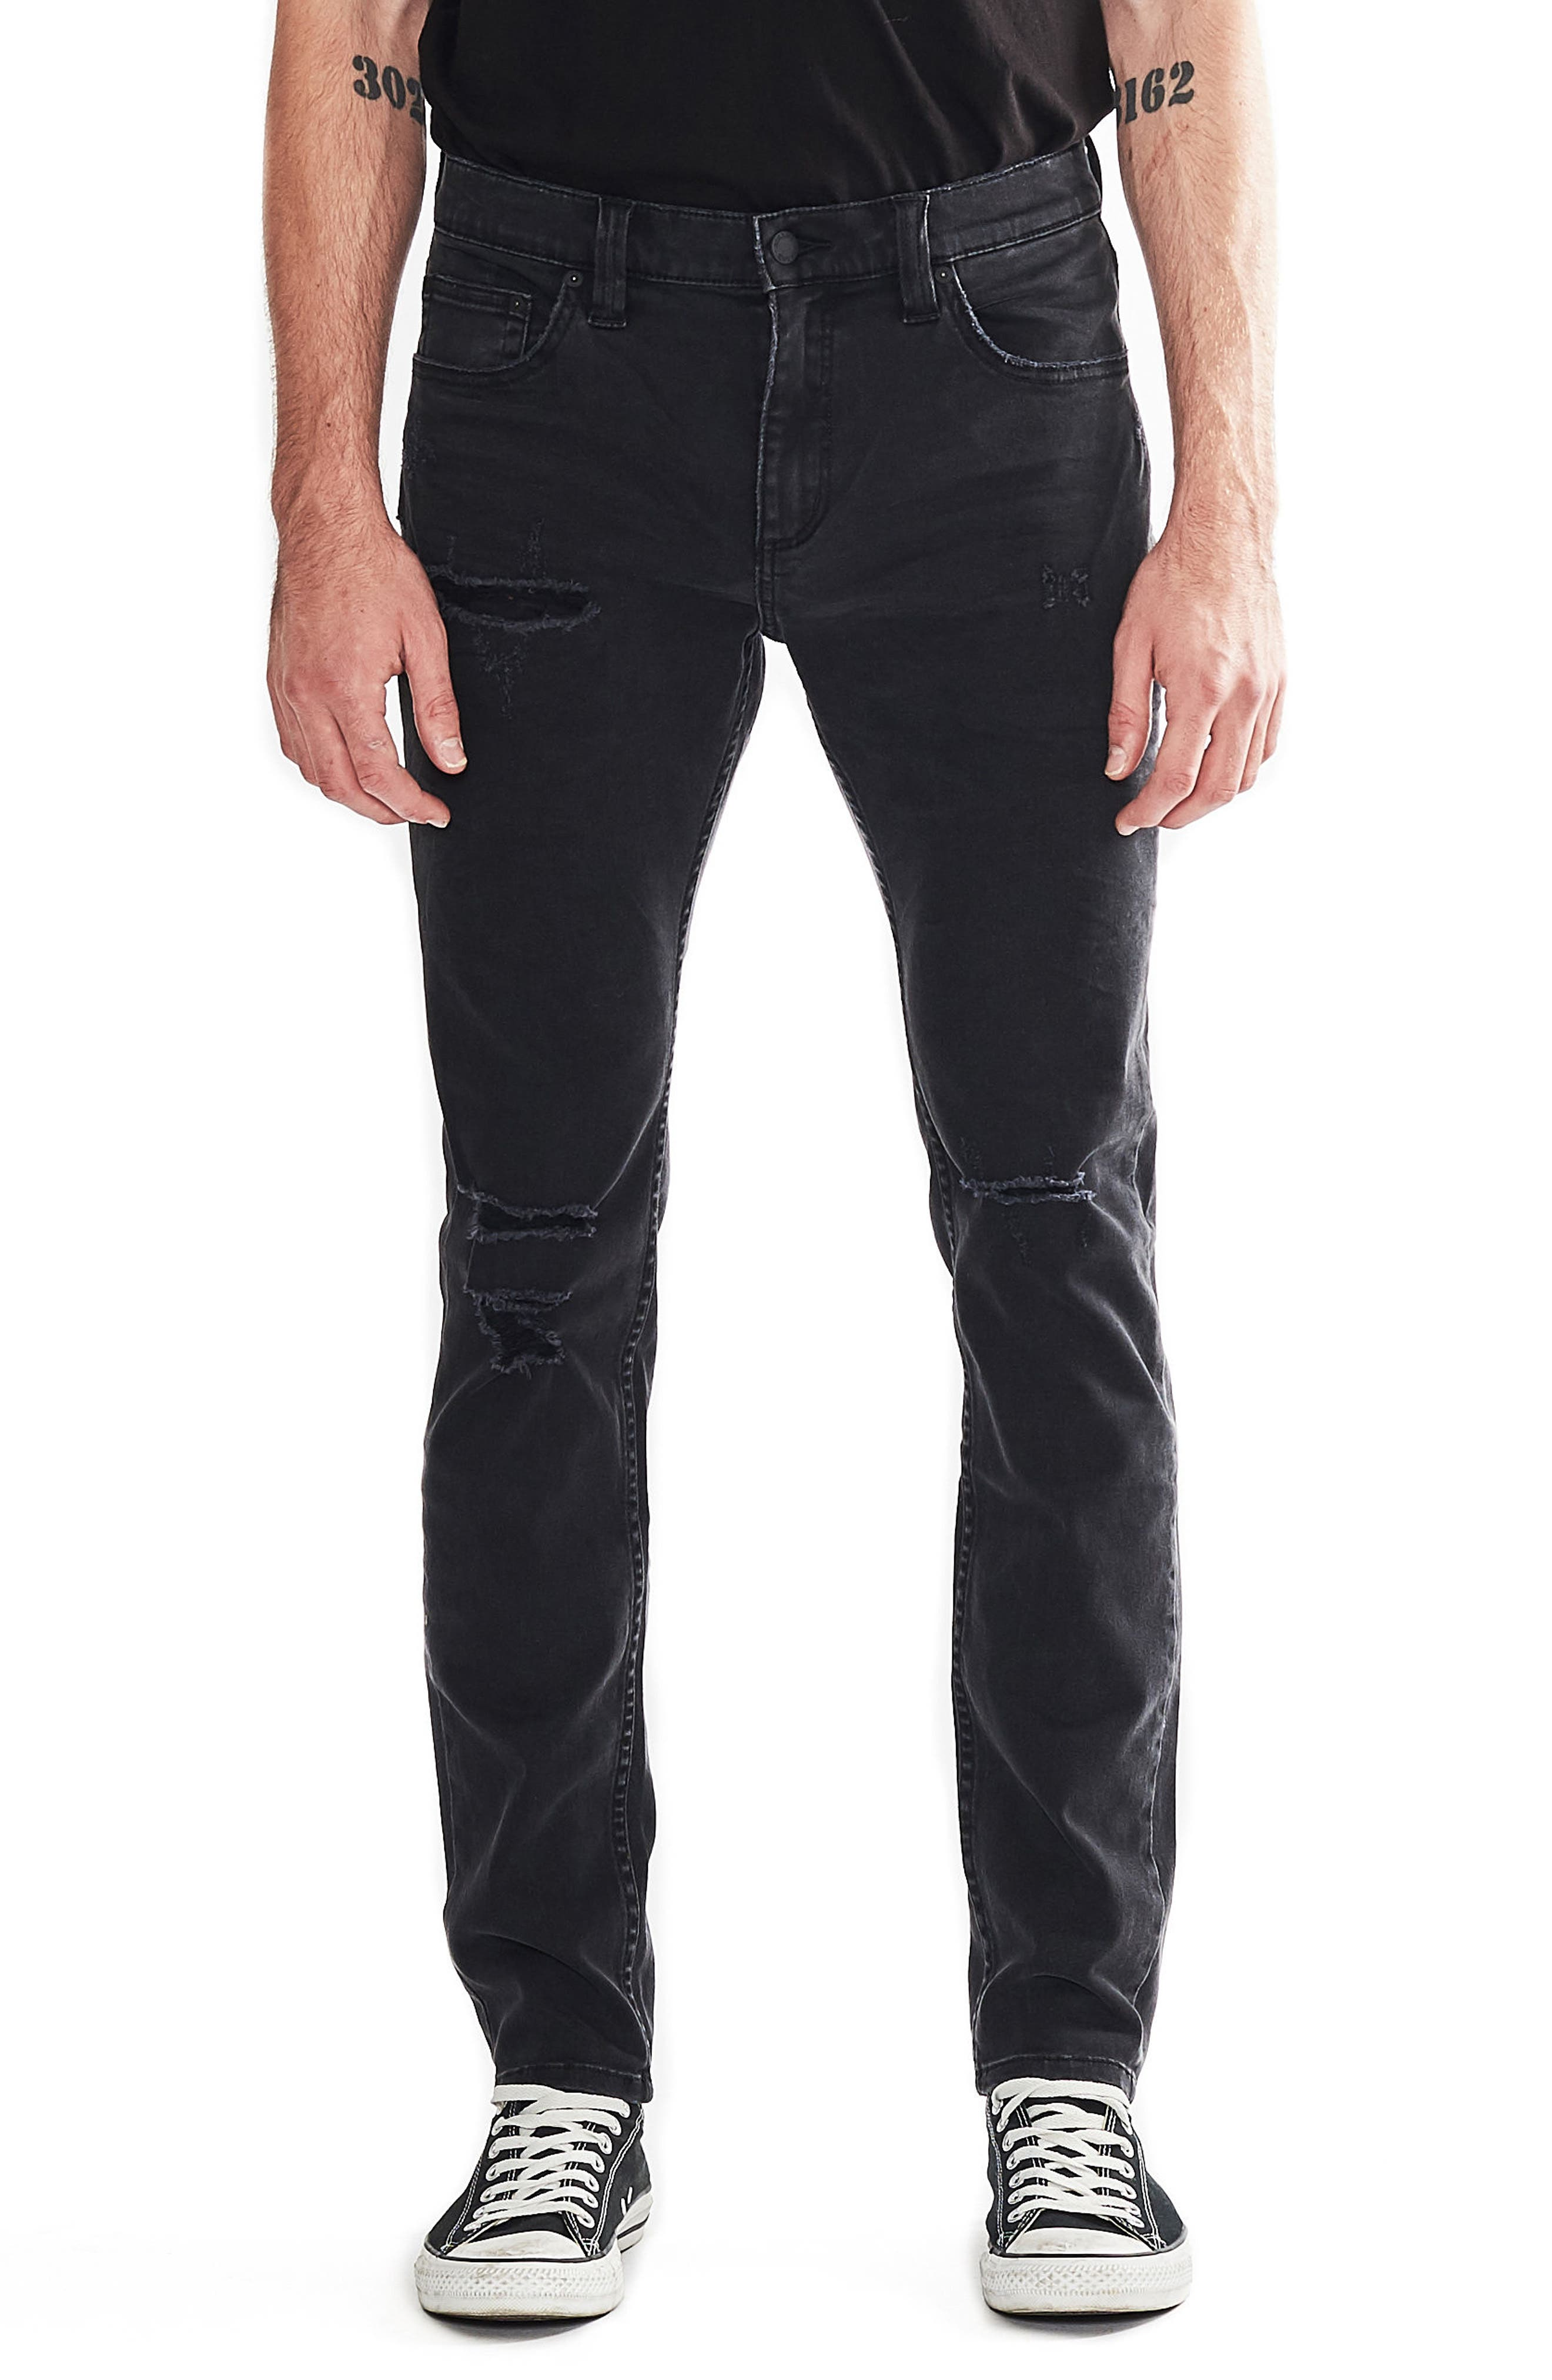 ROLLA'S Stinger Skinny Fit Jeans (Blowout Black)